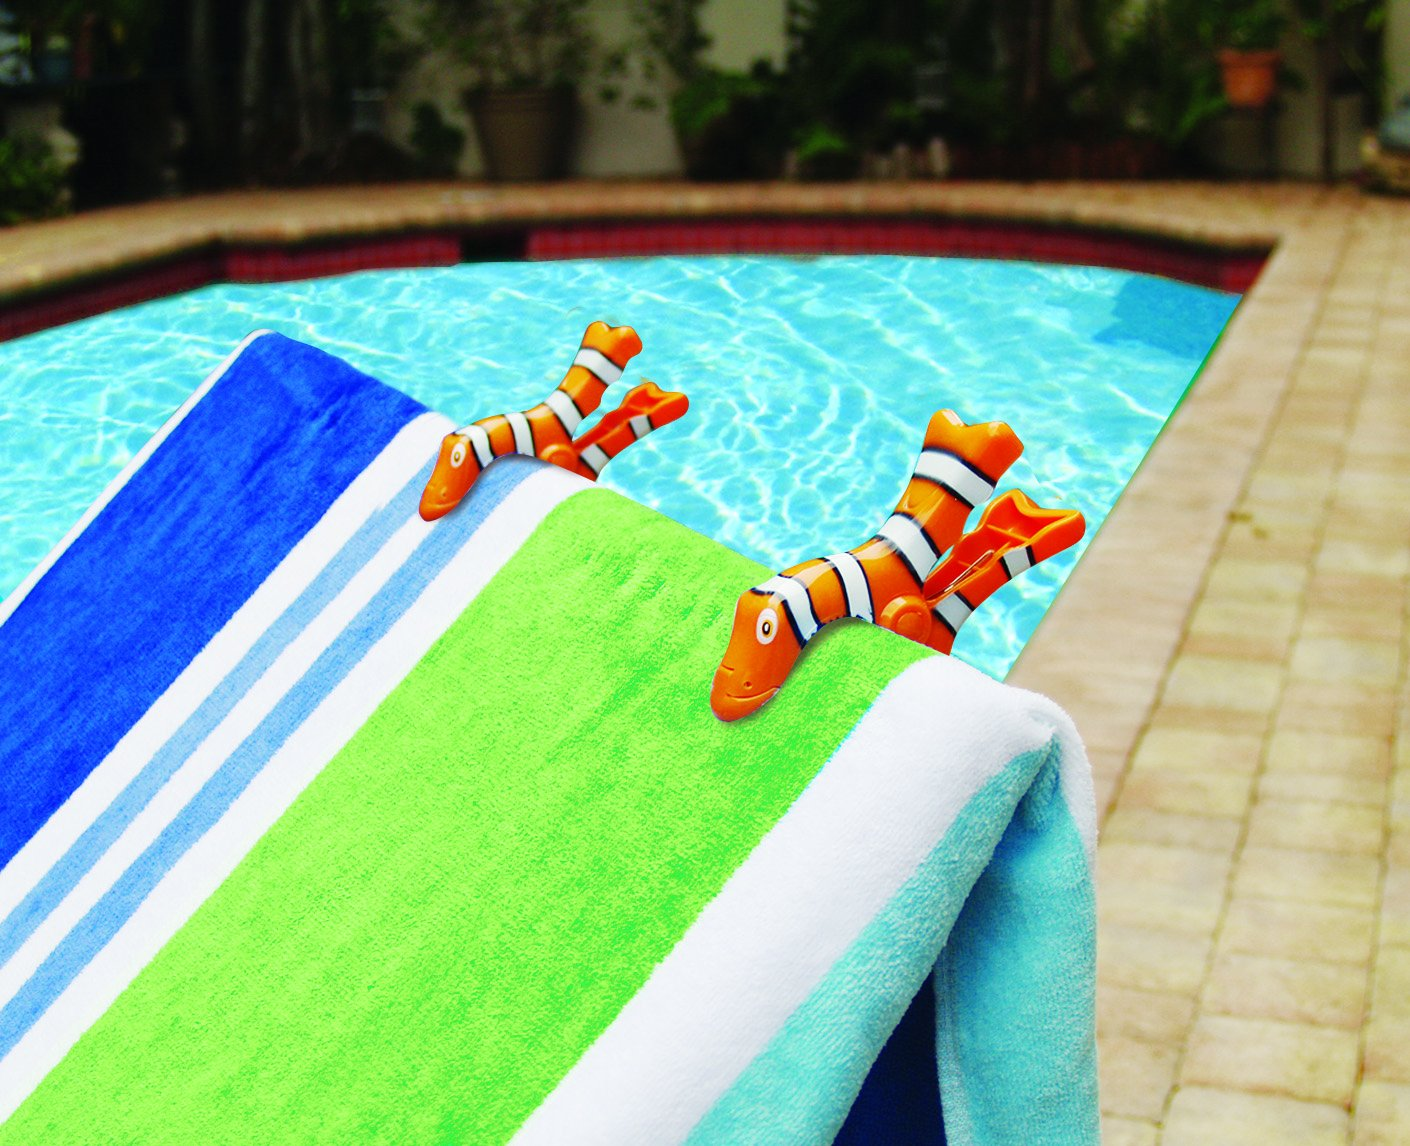 Amazon.com: Clown Fish BocaClips by O2COOL, Beach Towel Holders, Clips, Set of two, Beach, Patio or Pool Accessories, Portable Towel Clips, Chip Clips, ...